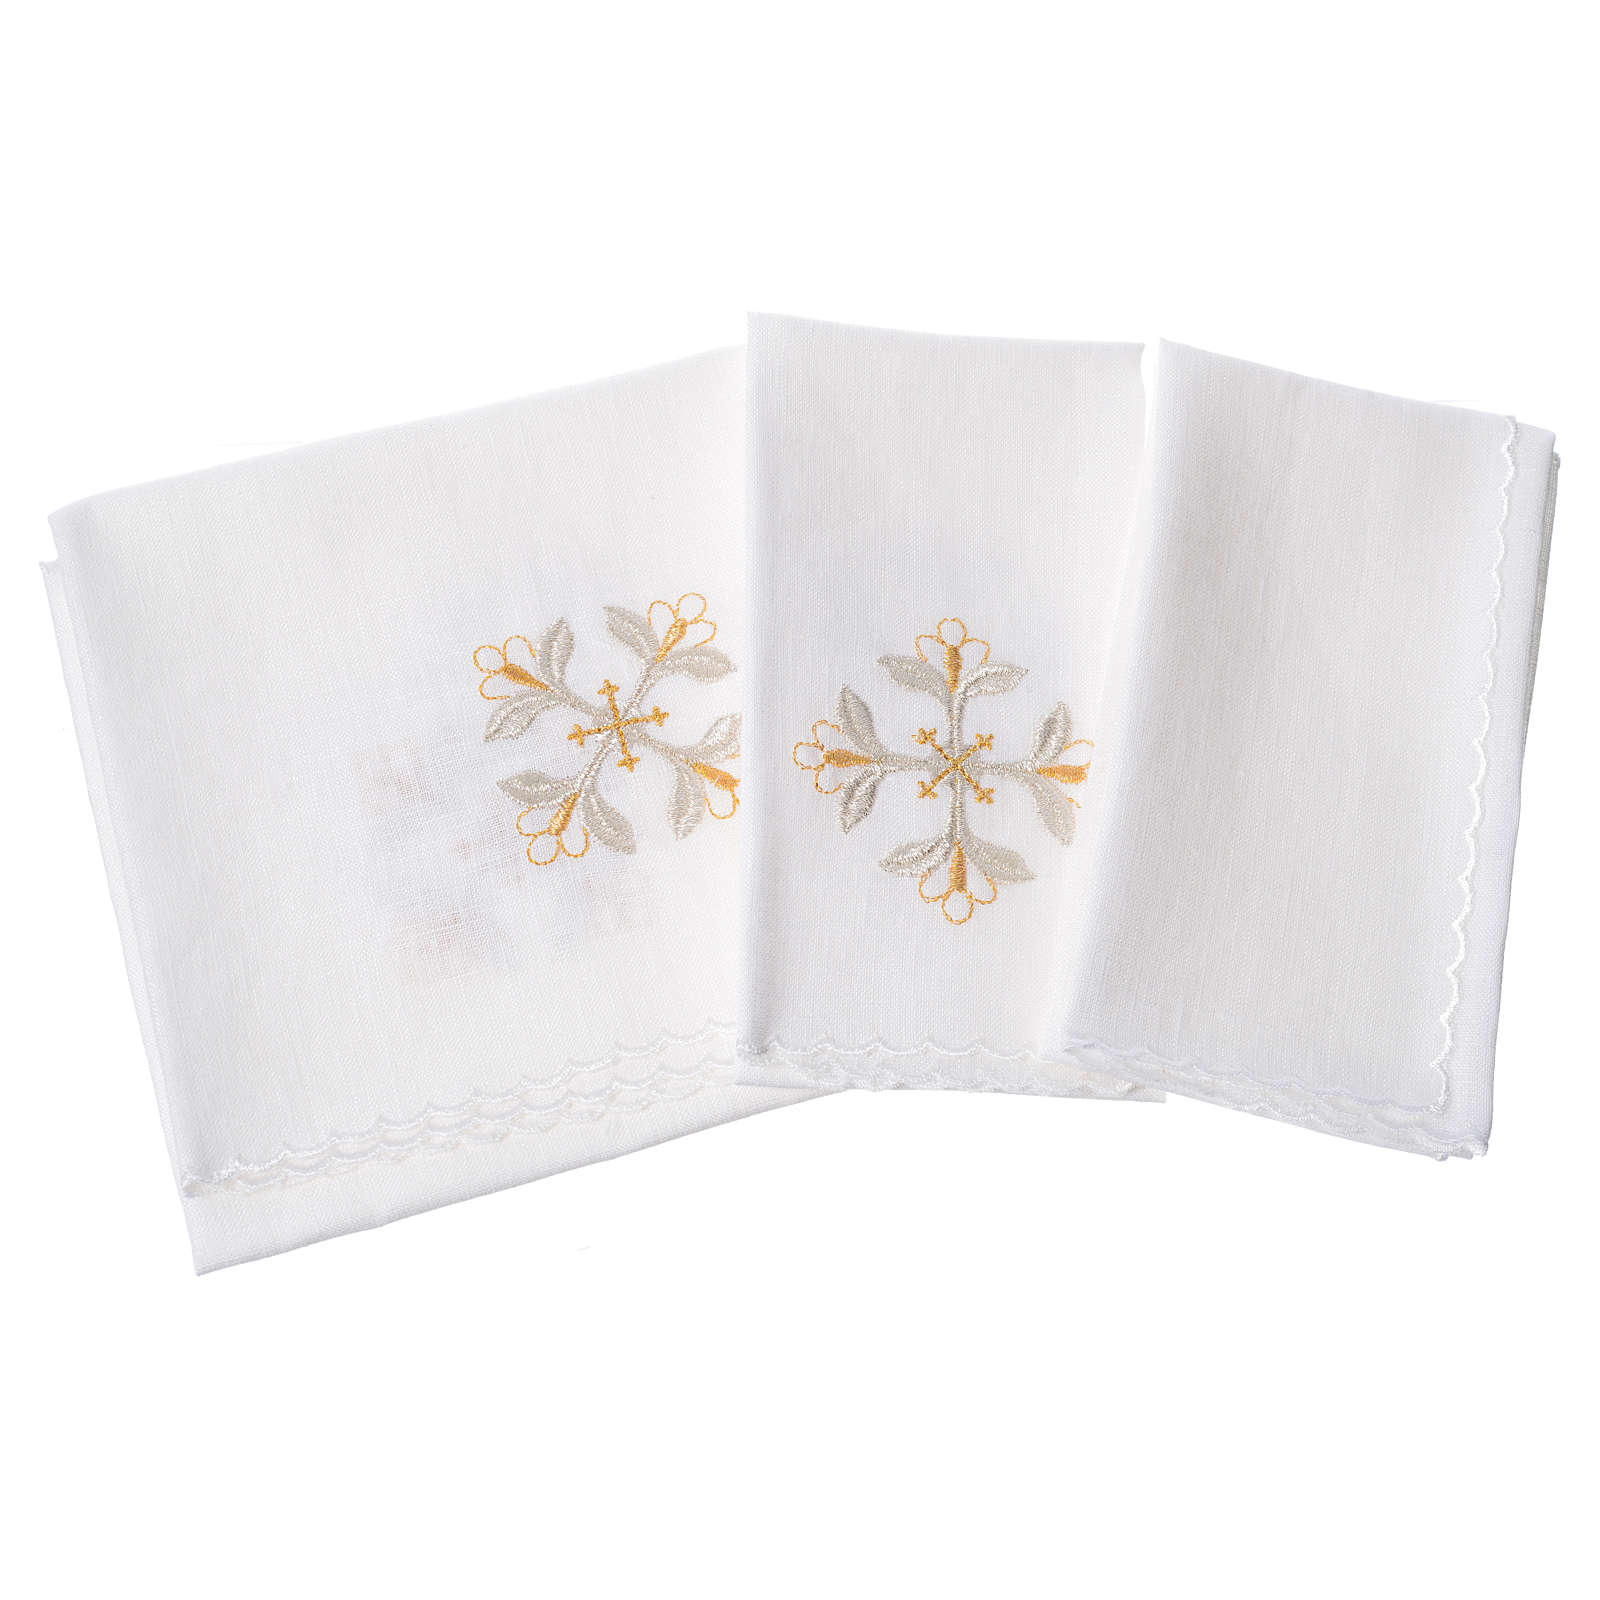 Altar linens set, 100% linen with cross and flowers 4